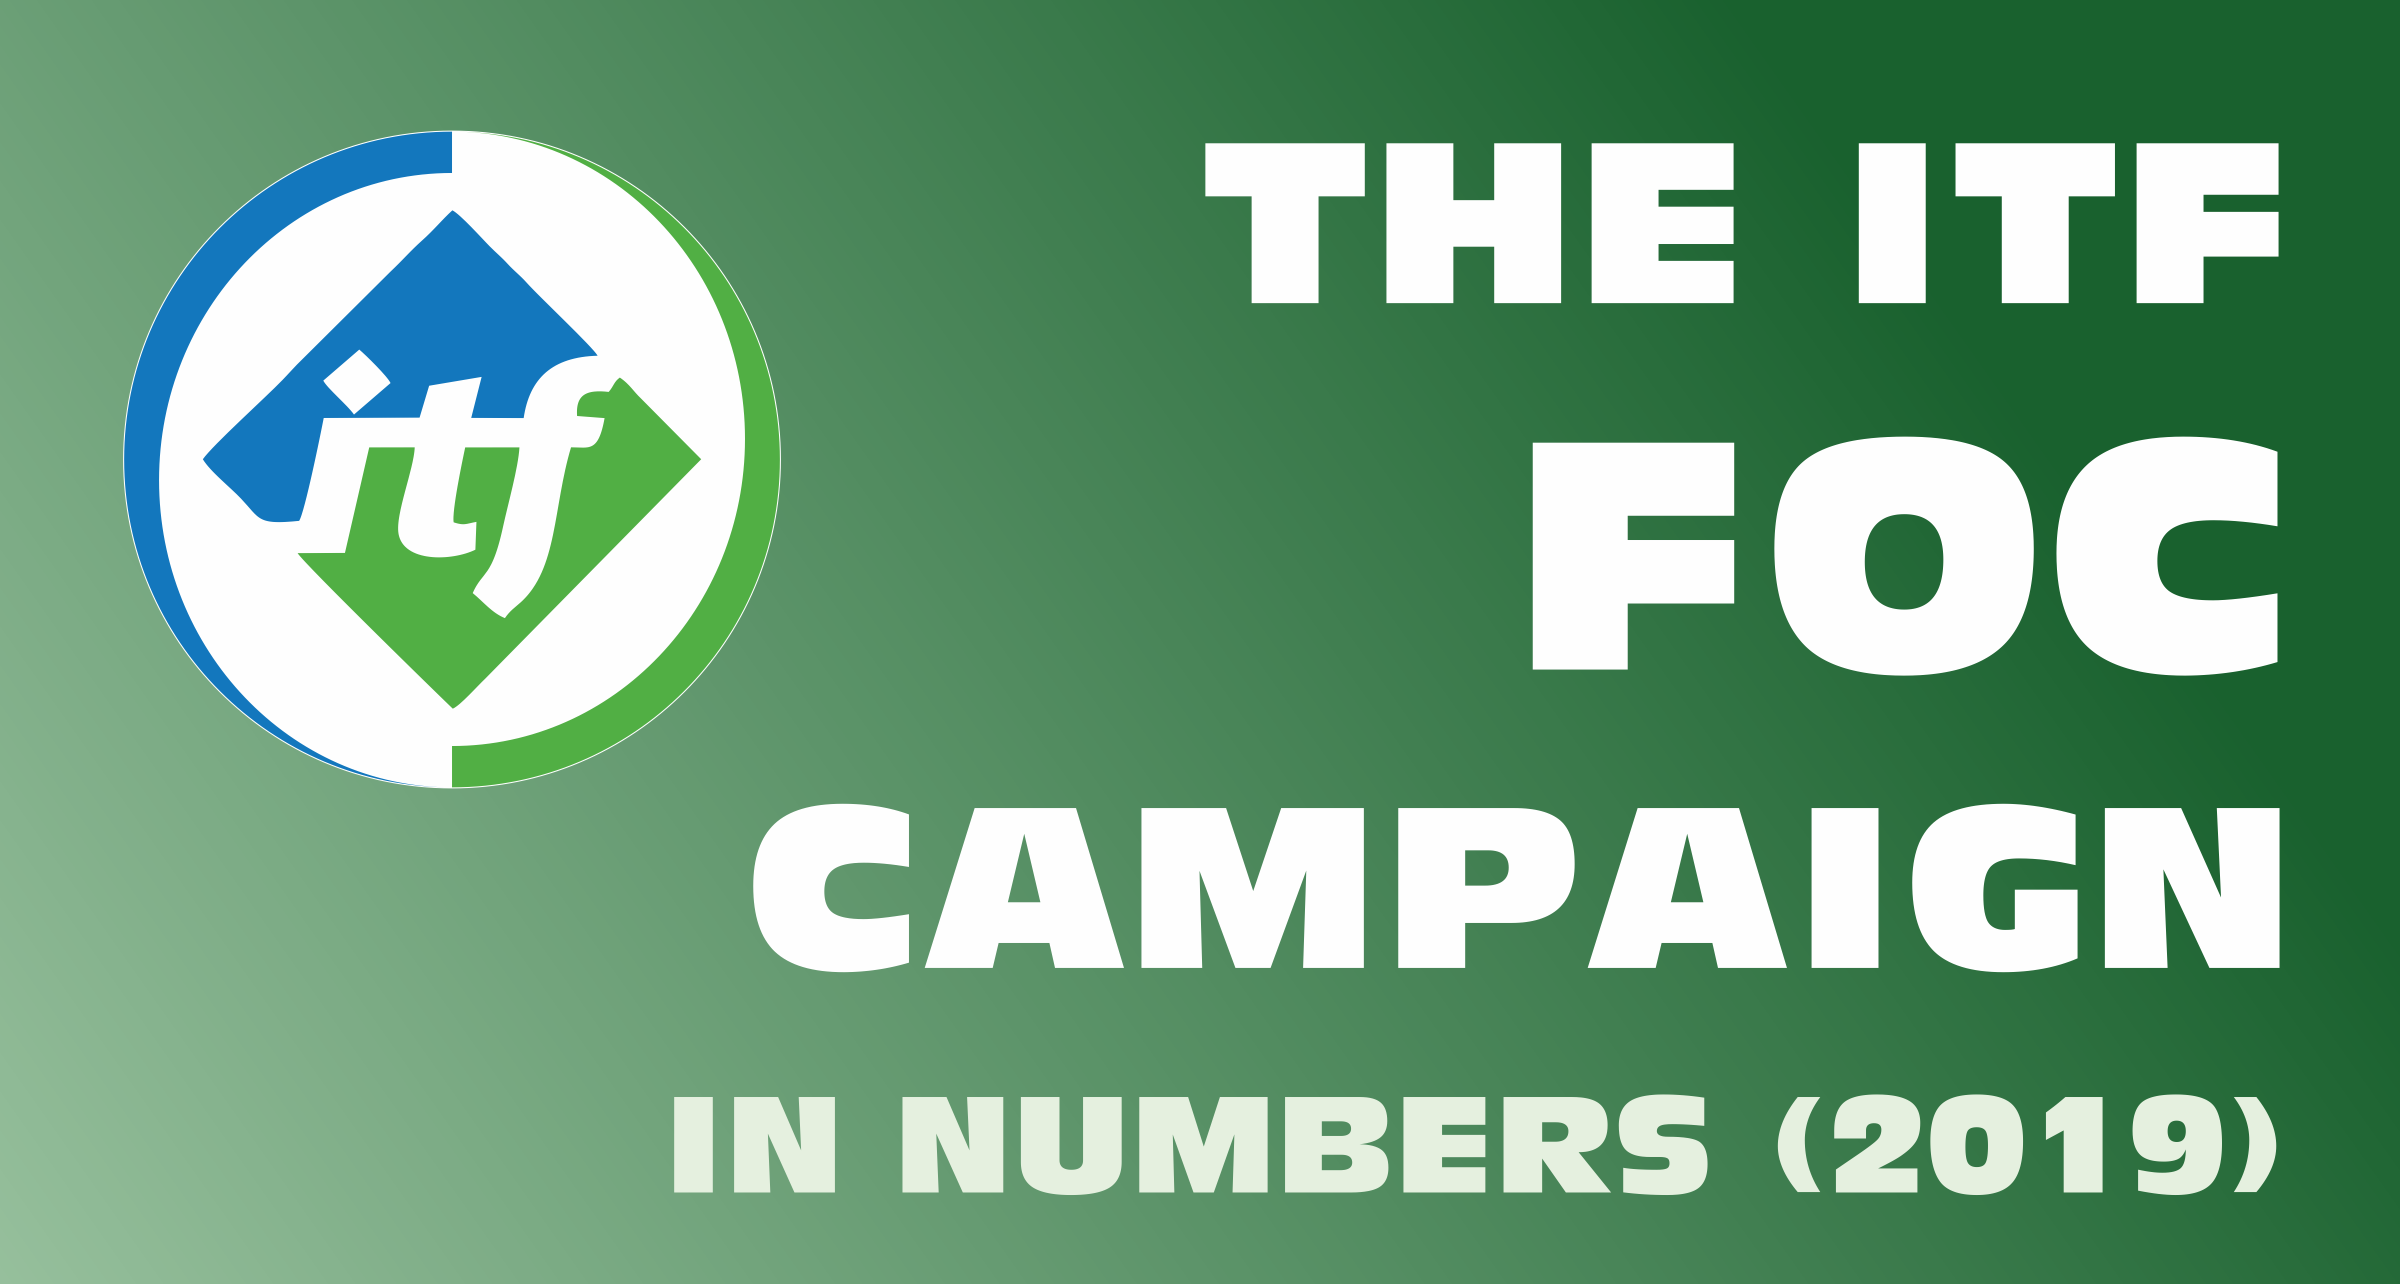 The ITF FOC Campaign in numbers (2019)